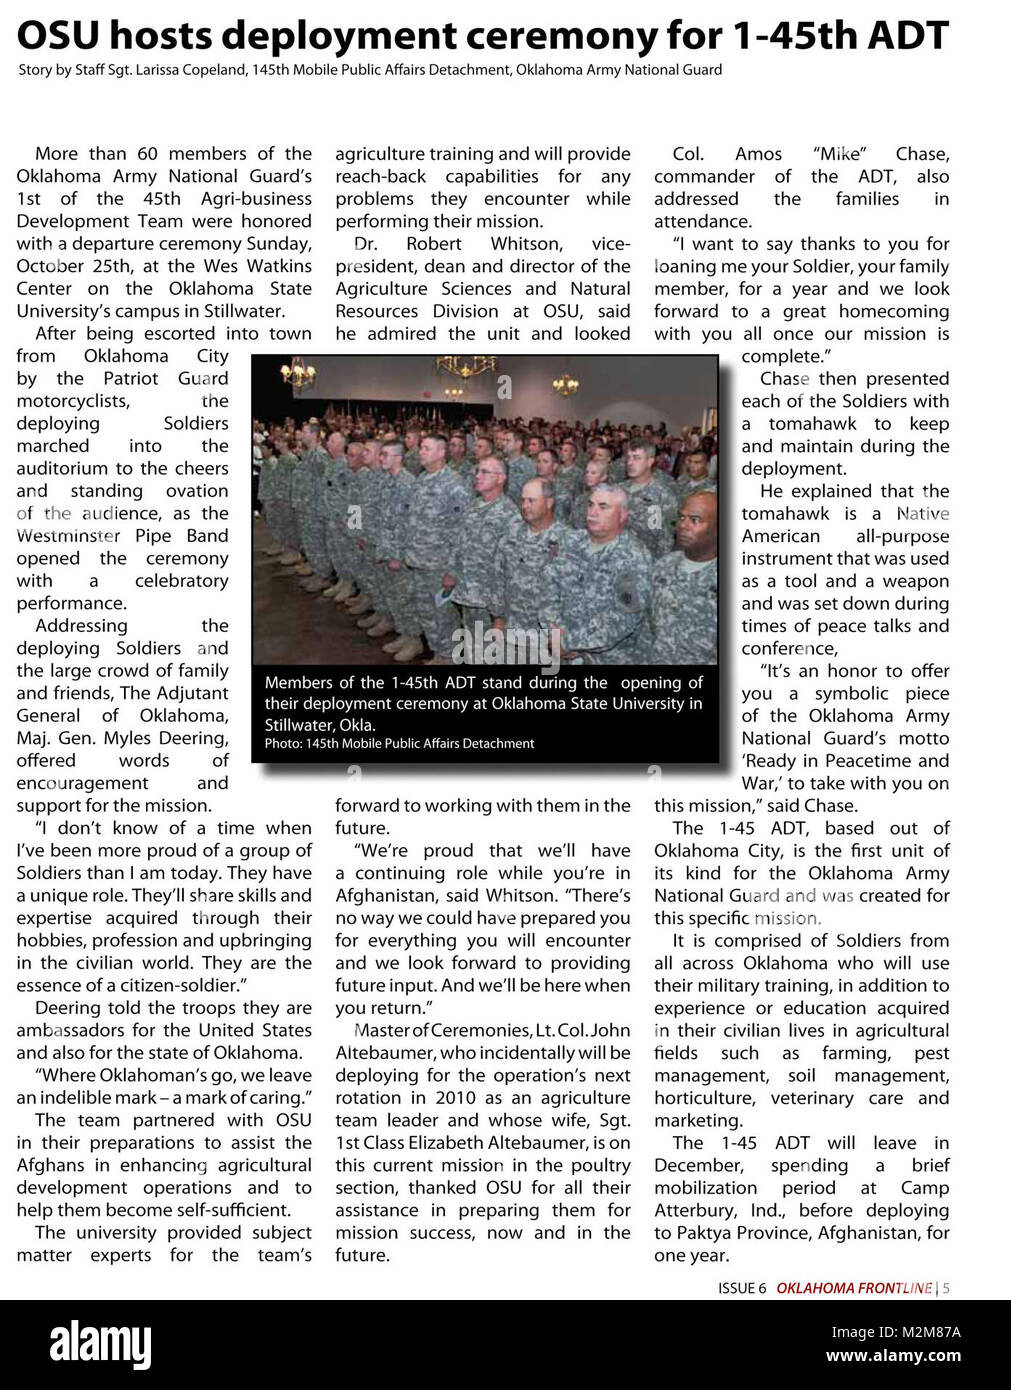 Community Newspaper December 2009 Frontline Page 5 by Oklahoma National Guard Stock Photo